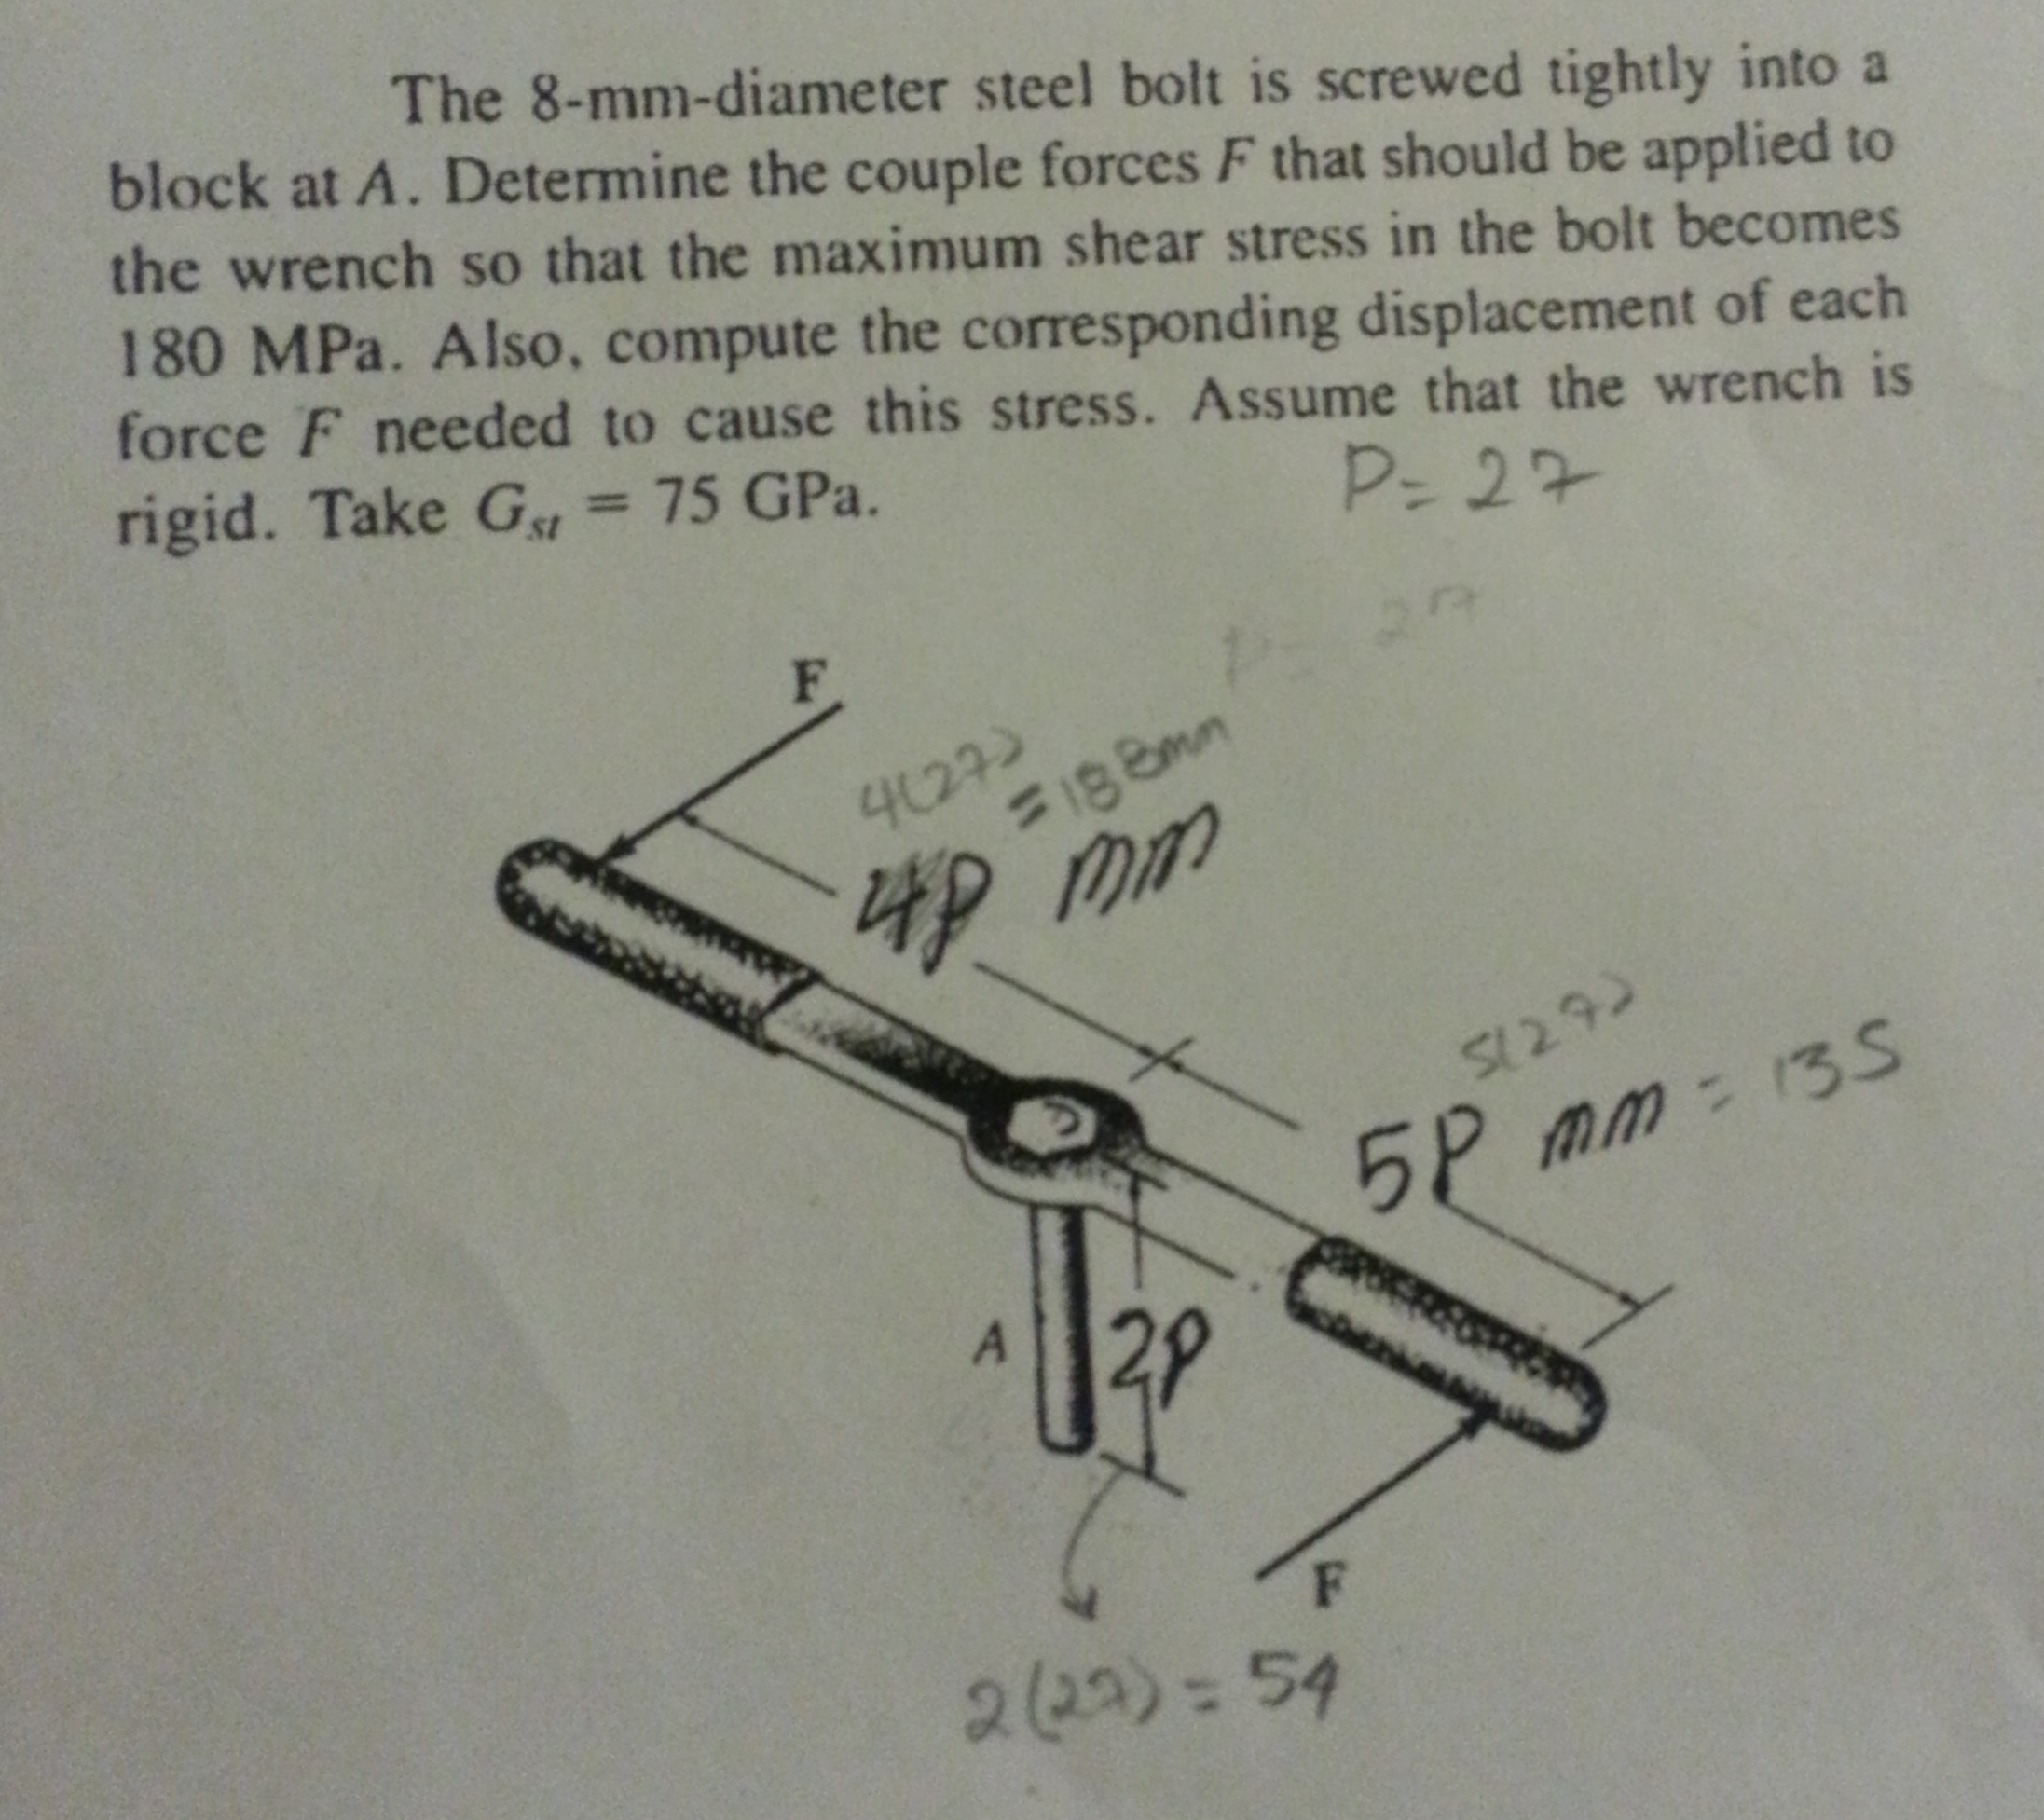 question: please show a free body diagram if necessary for this problem   the question asks: a 8mm diameter a-6 steel bolt is screwed tightly into a  block at